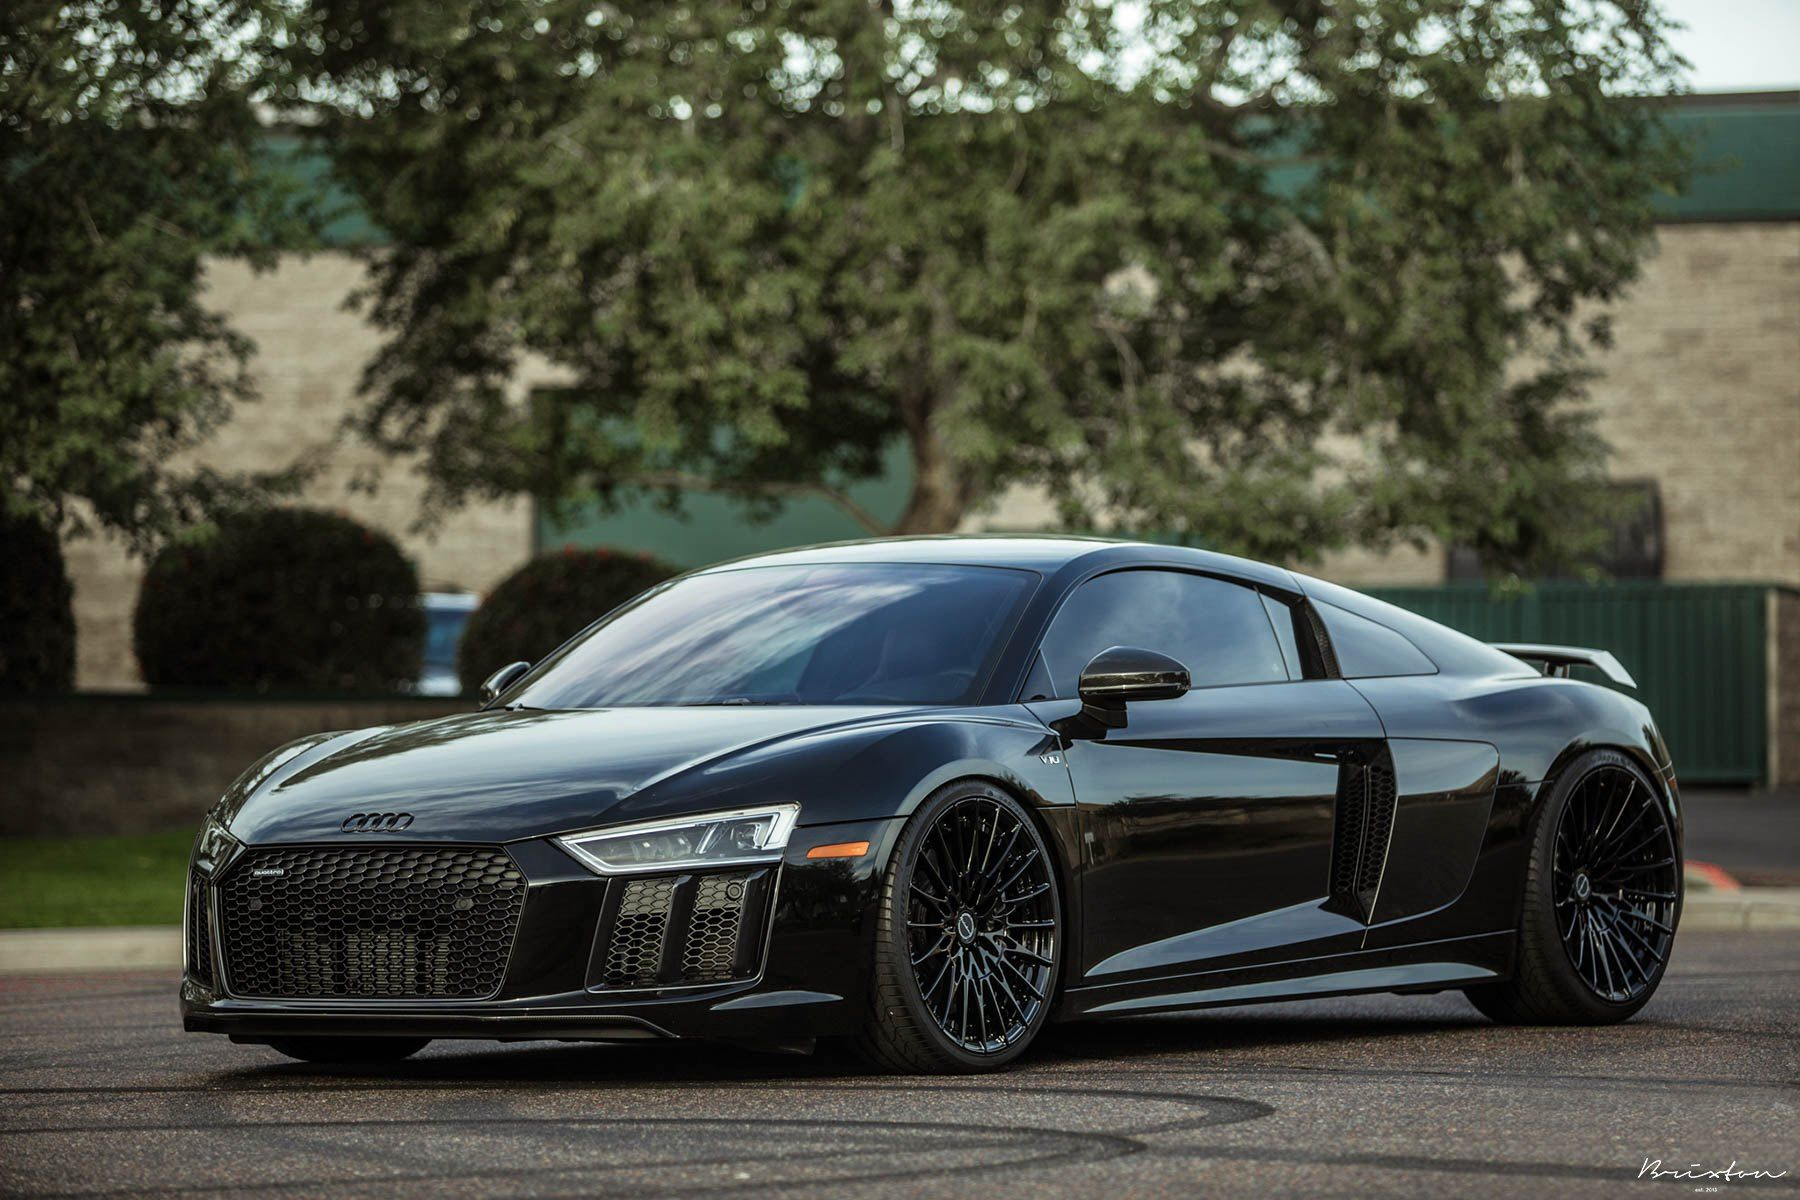 Stealthy Takes Over Black Audi R8 With Custom Parts Dope Black